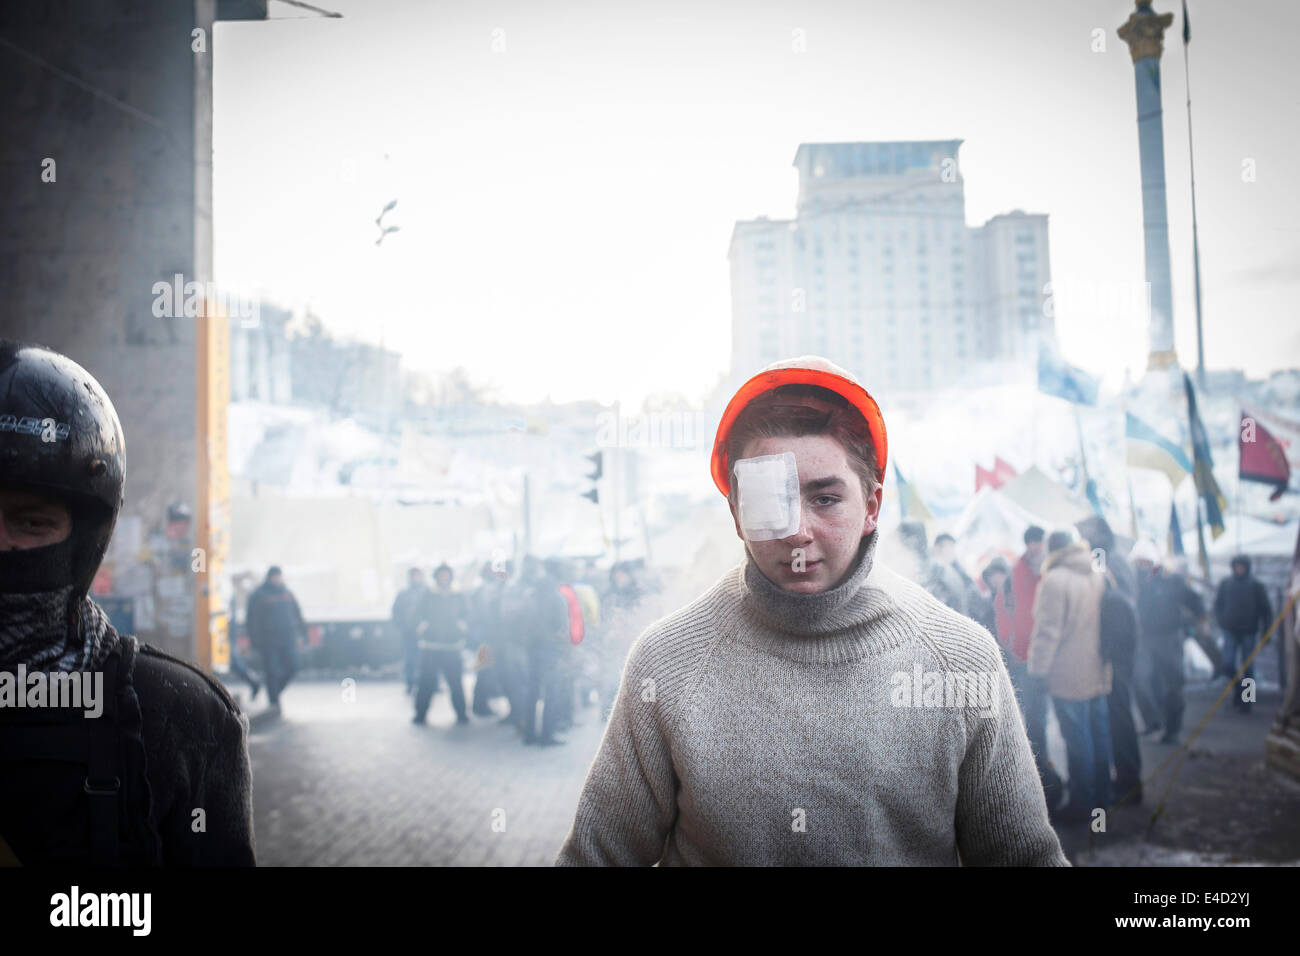 Injured protester, Euromaidan, Kiev, Ukraine - Stock Image